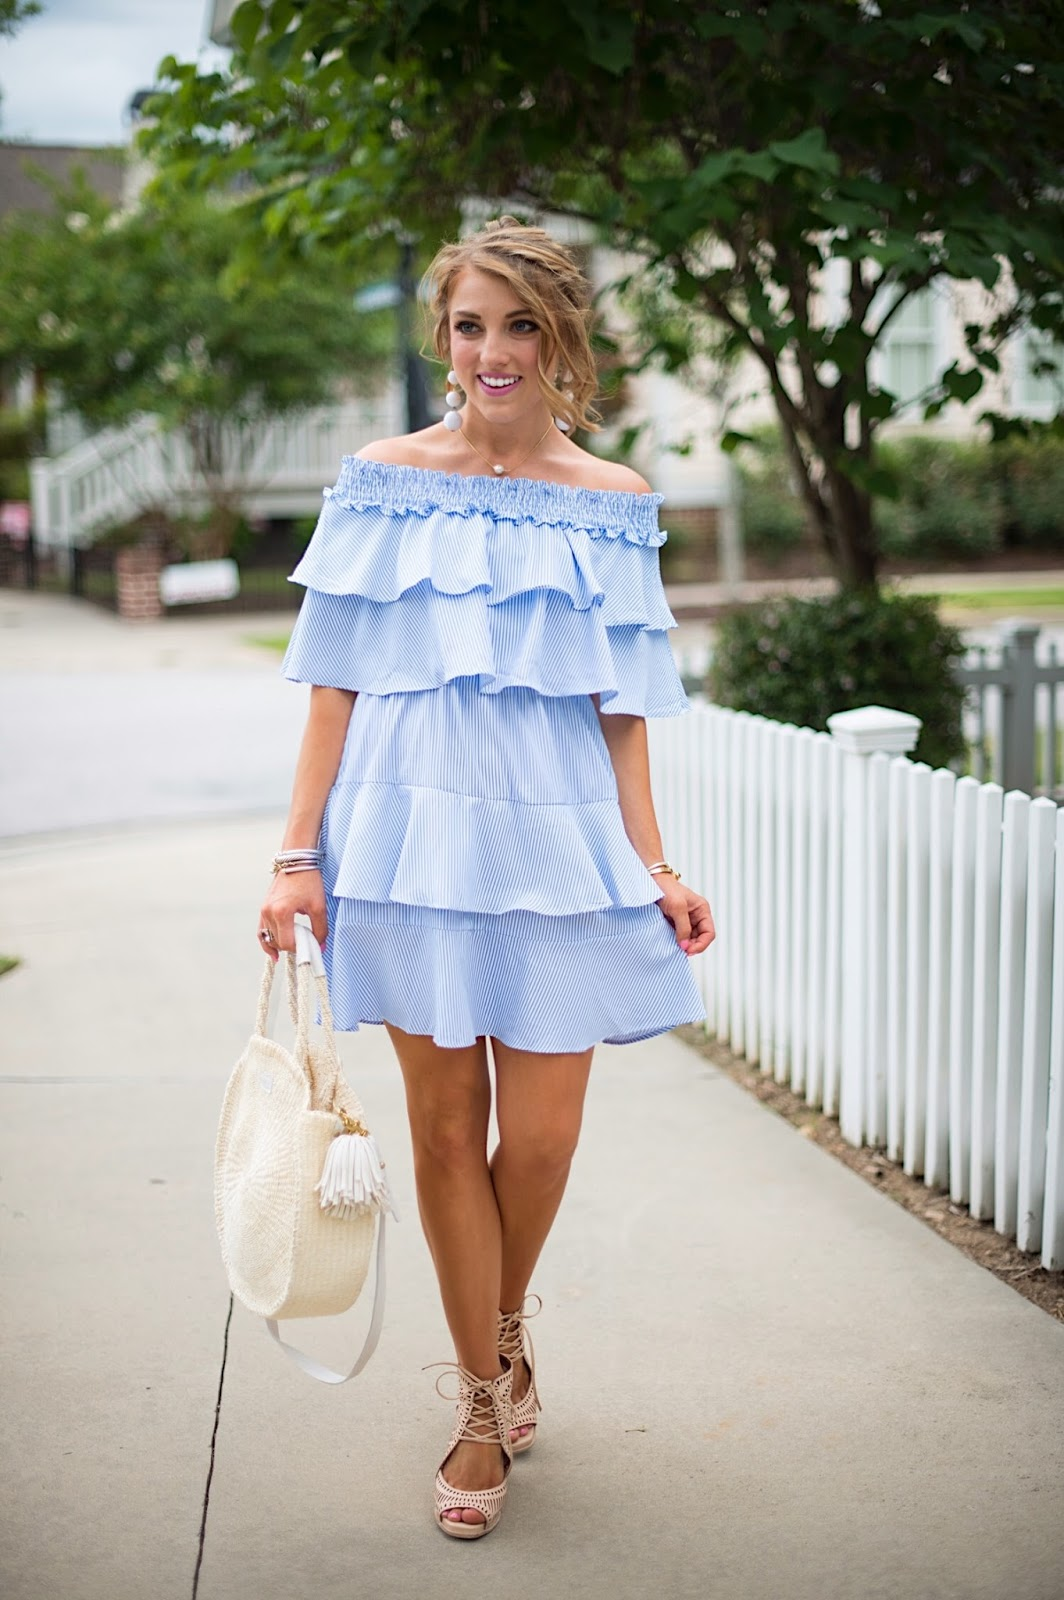 Under $50 Ruffle Dress - Click through to see more on Something Delightful Blog!